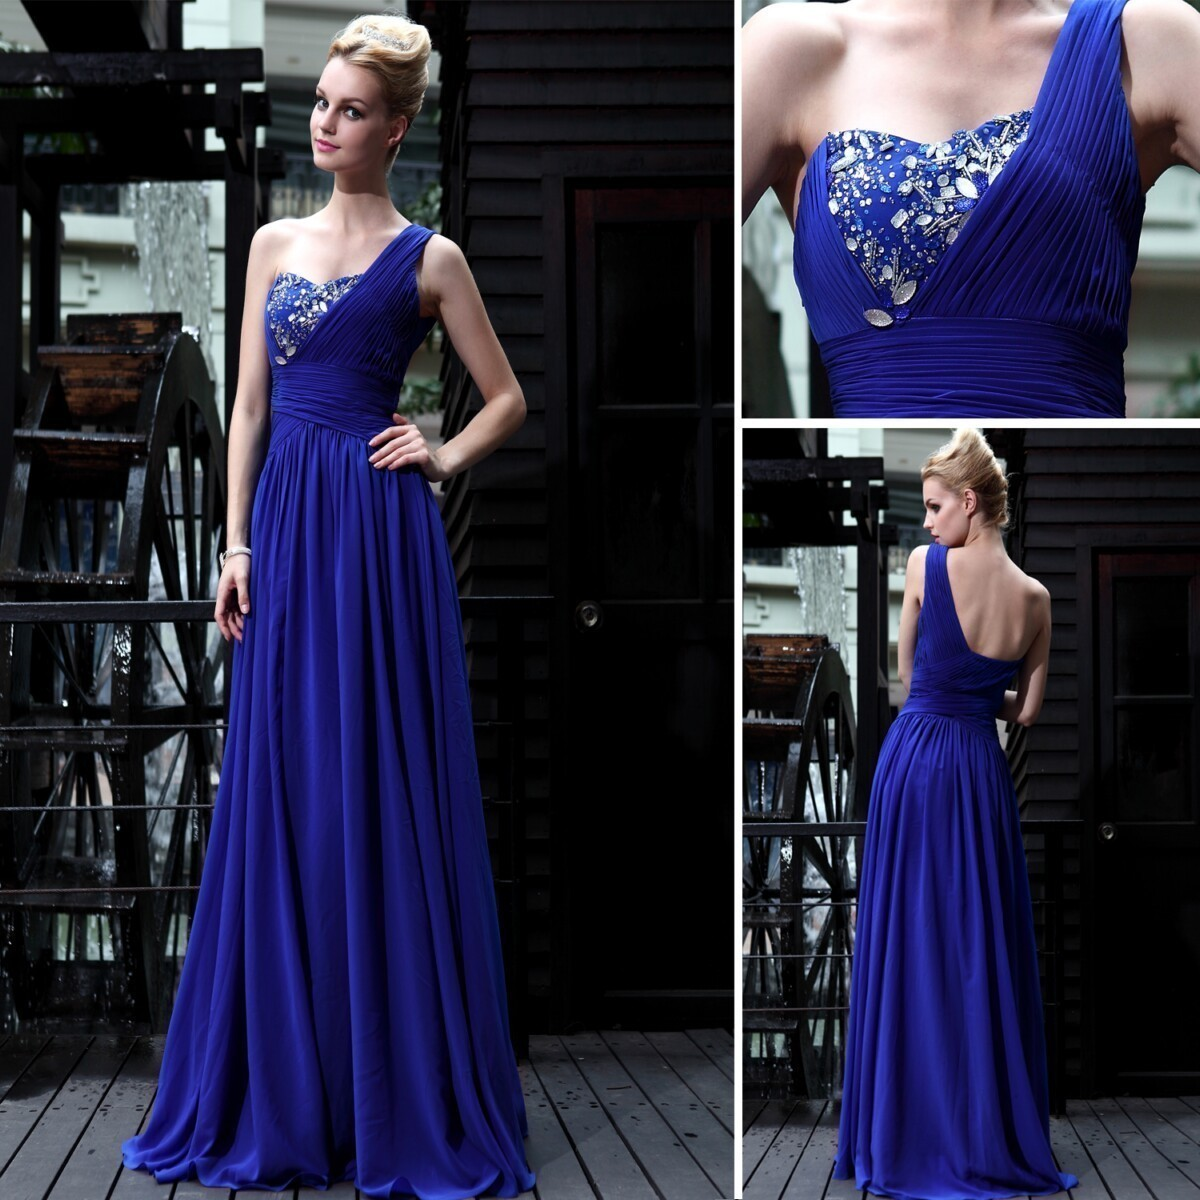 Free Shipping 2018 Banquet Sapphire Blue One Shoulder With Diamond Fashion Hot-selling Brides Maid Women Bridesmaid Dresses